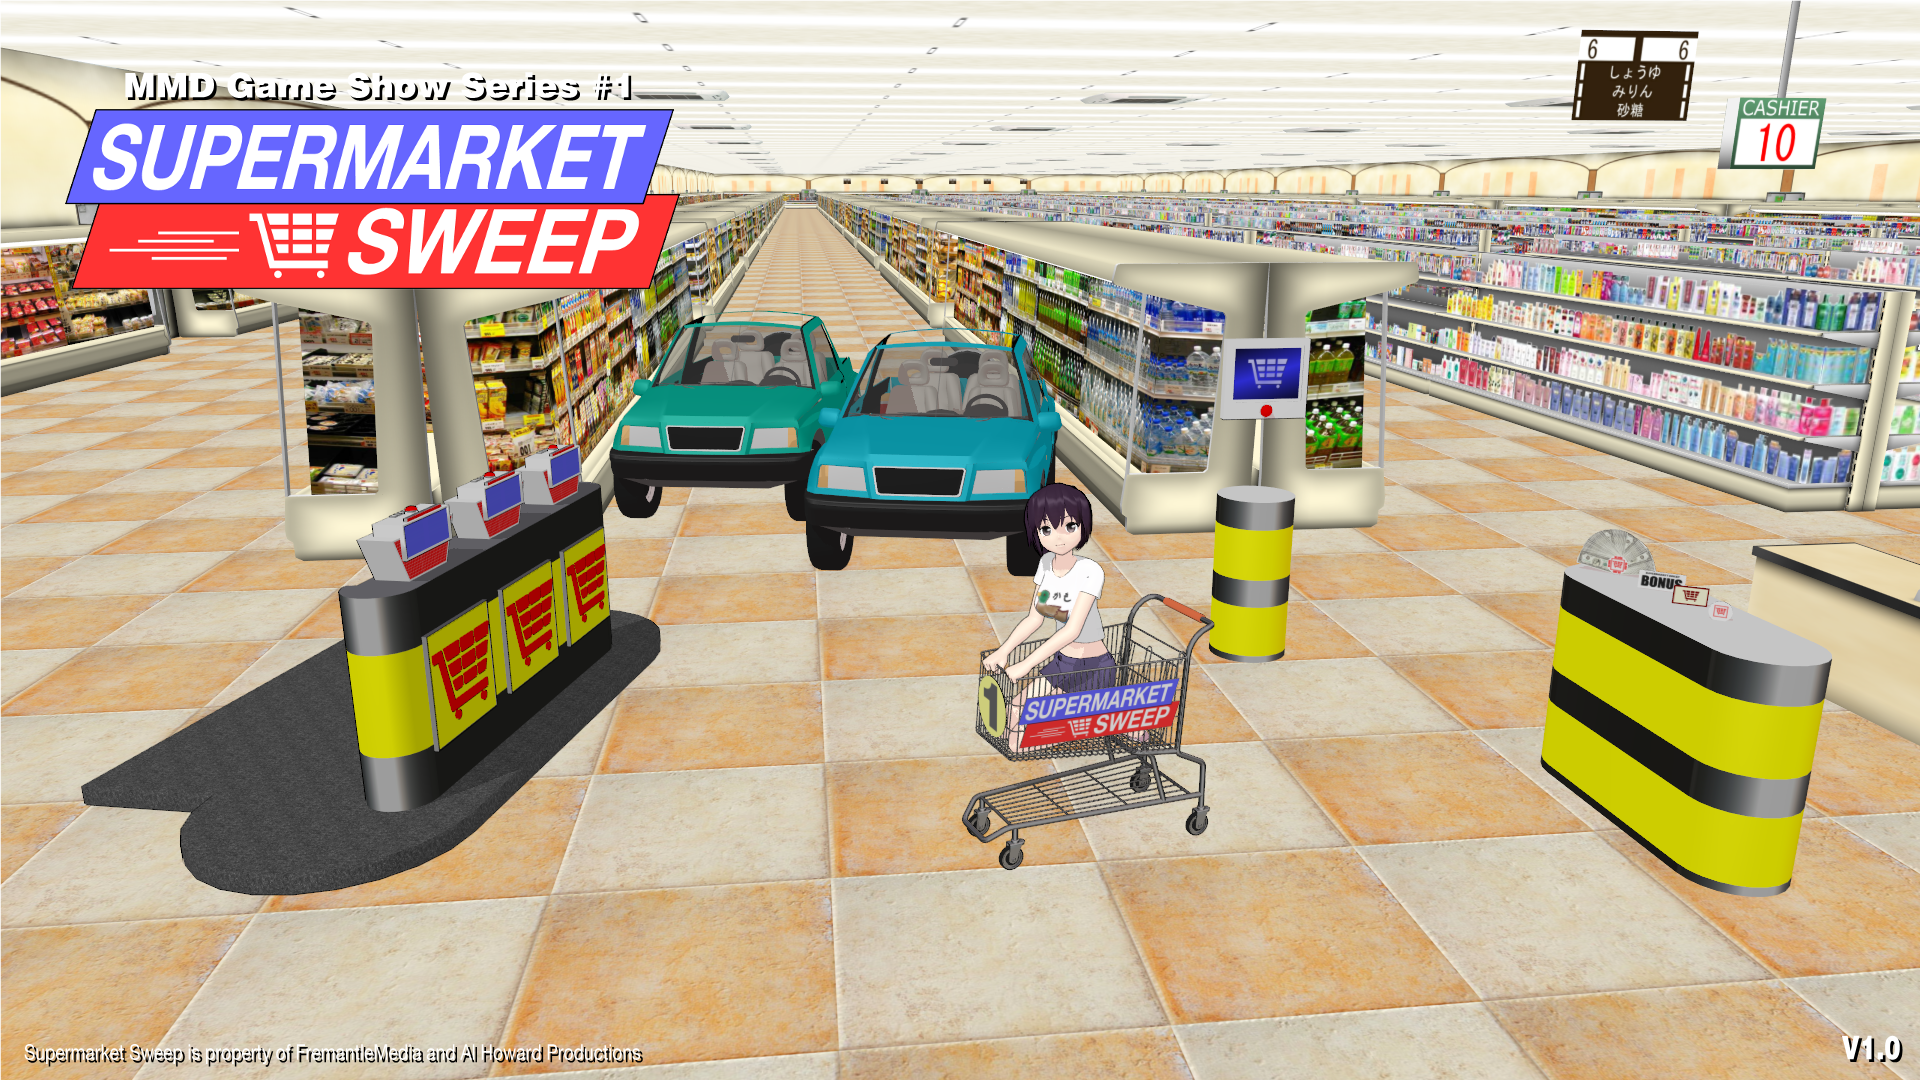 MMD Game Show Series #1] Supermarket Sweep v1 0 by